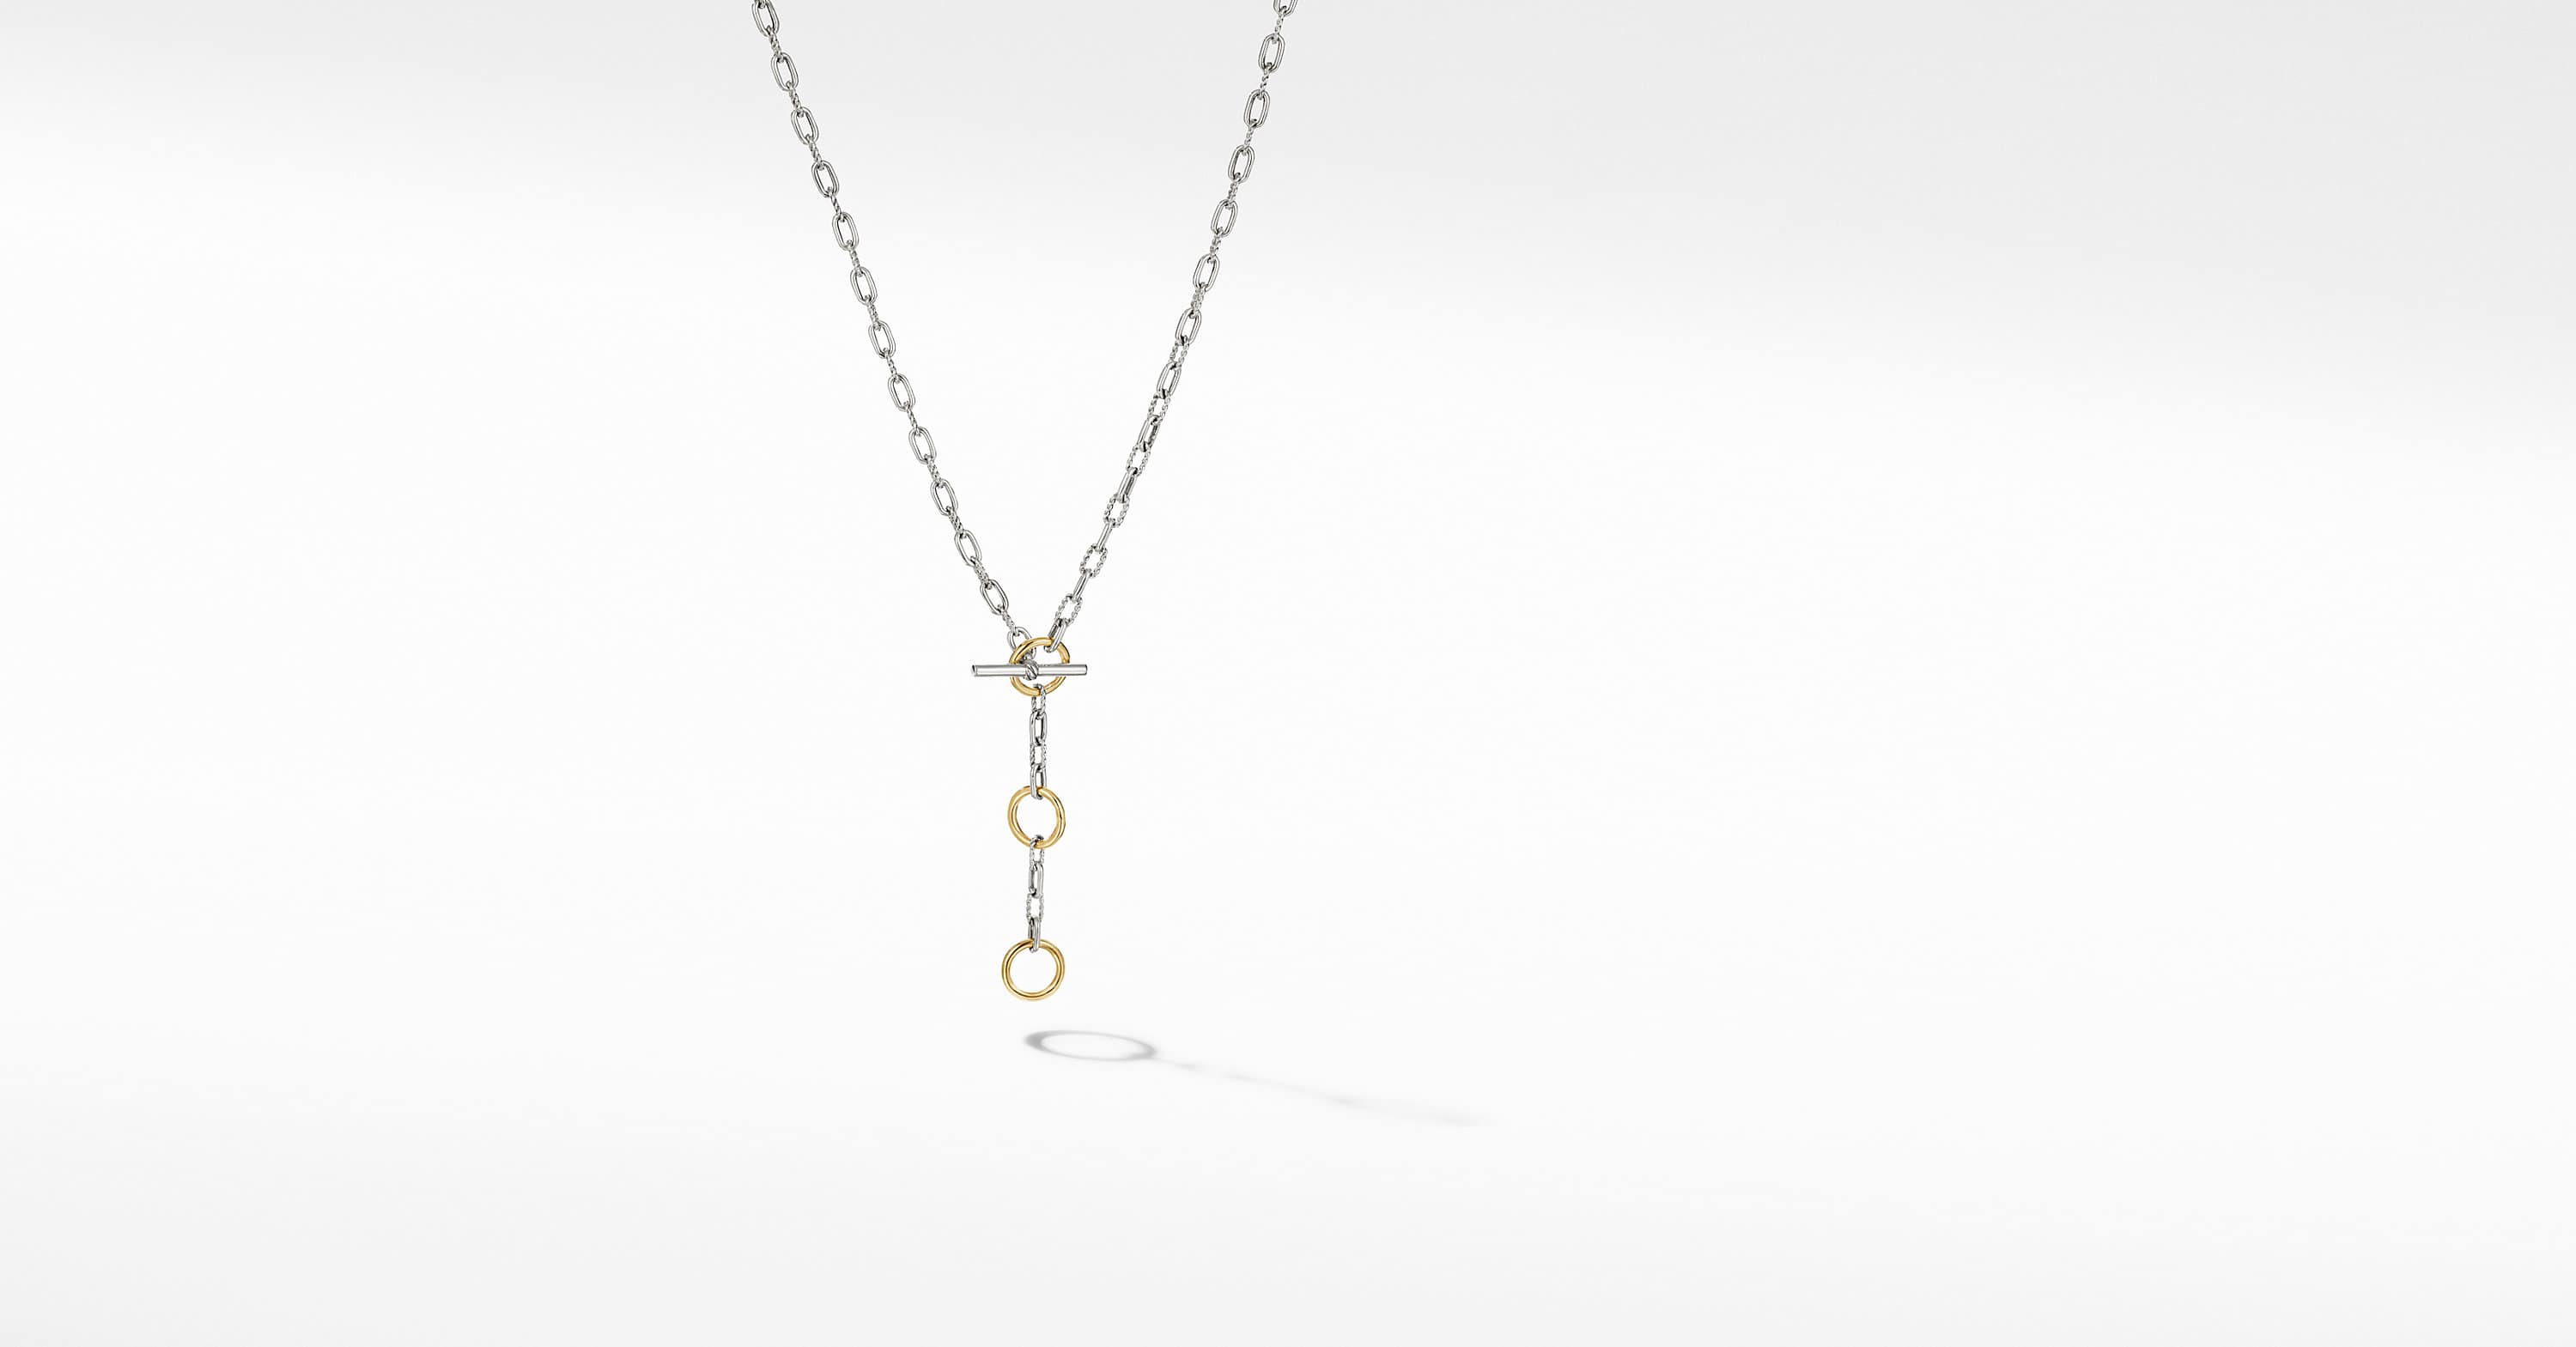 DY Madison Three Ring Chain Necklace with 18K Yellow Gold